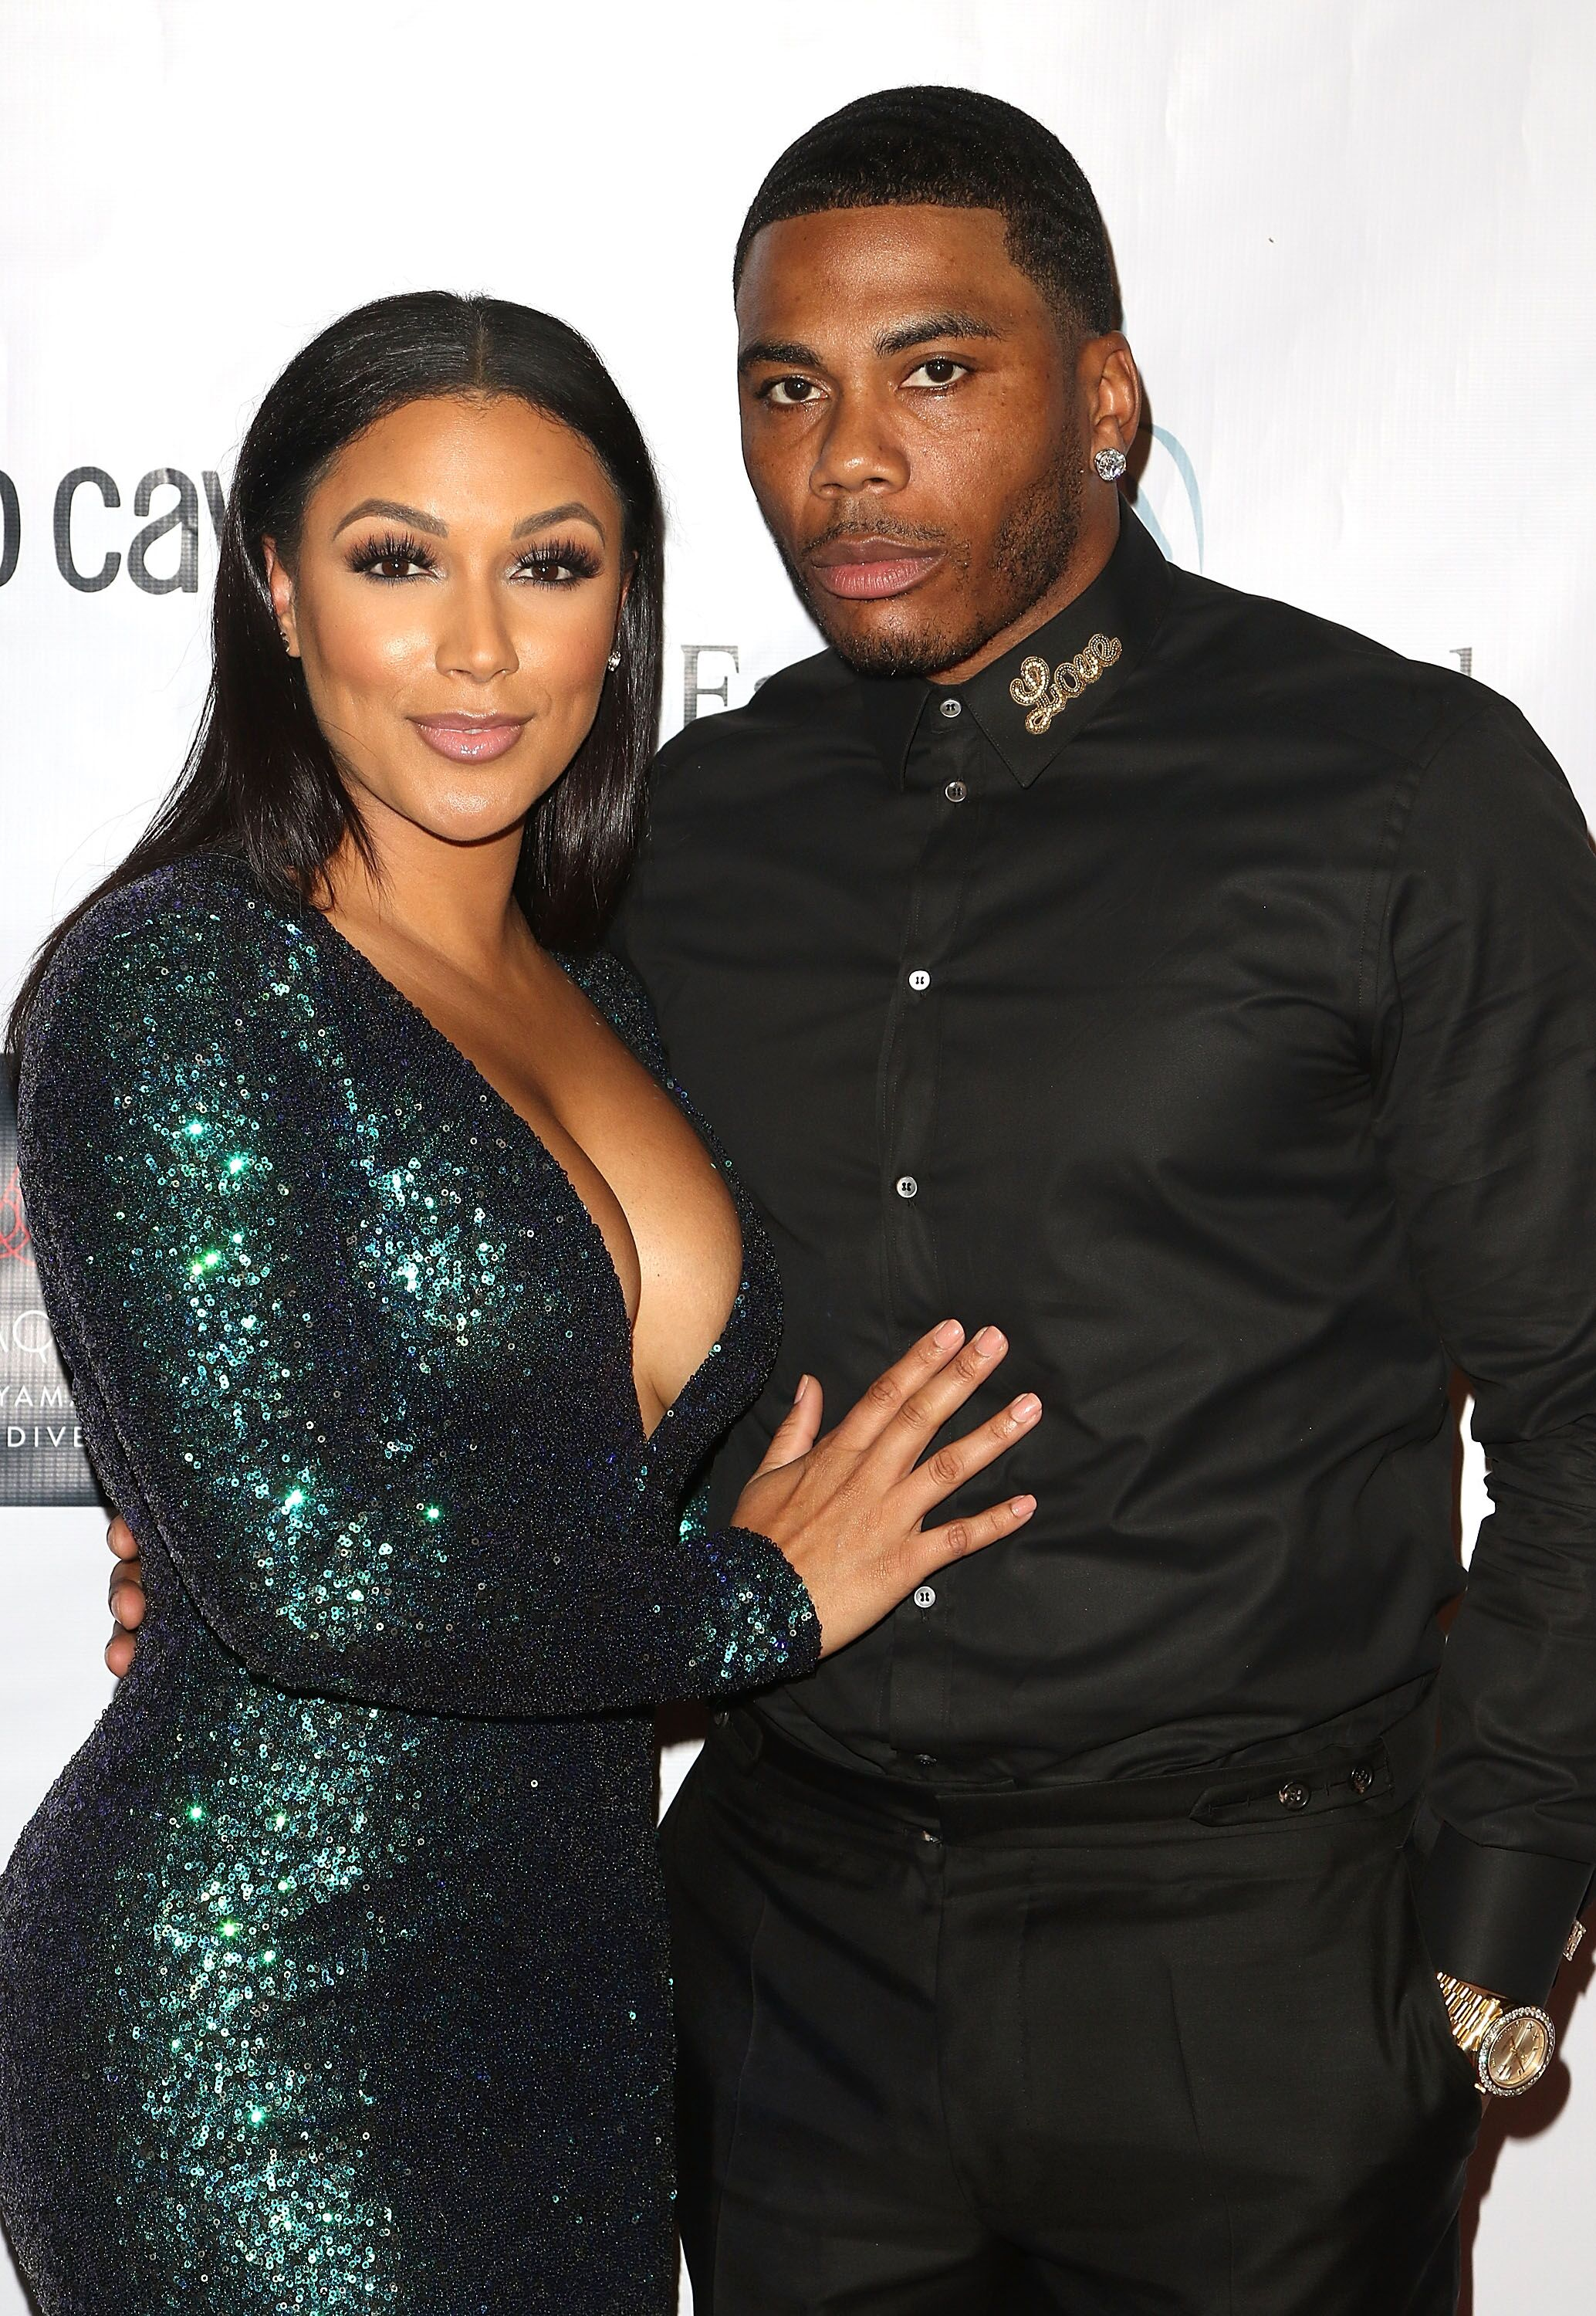 Rapper Nelly with his long-time girlfriend, Shantel Jackson/ Source: Getty Images